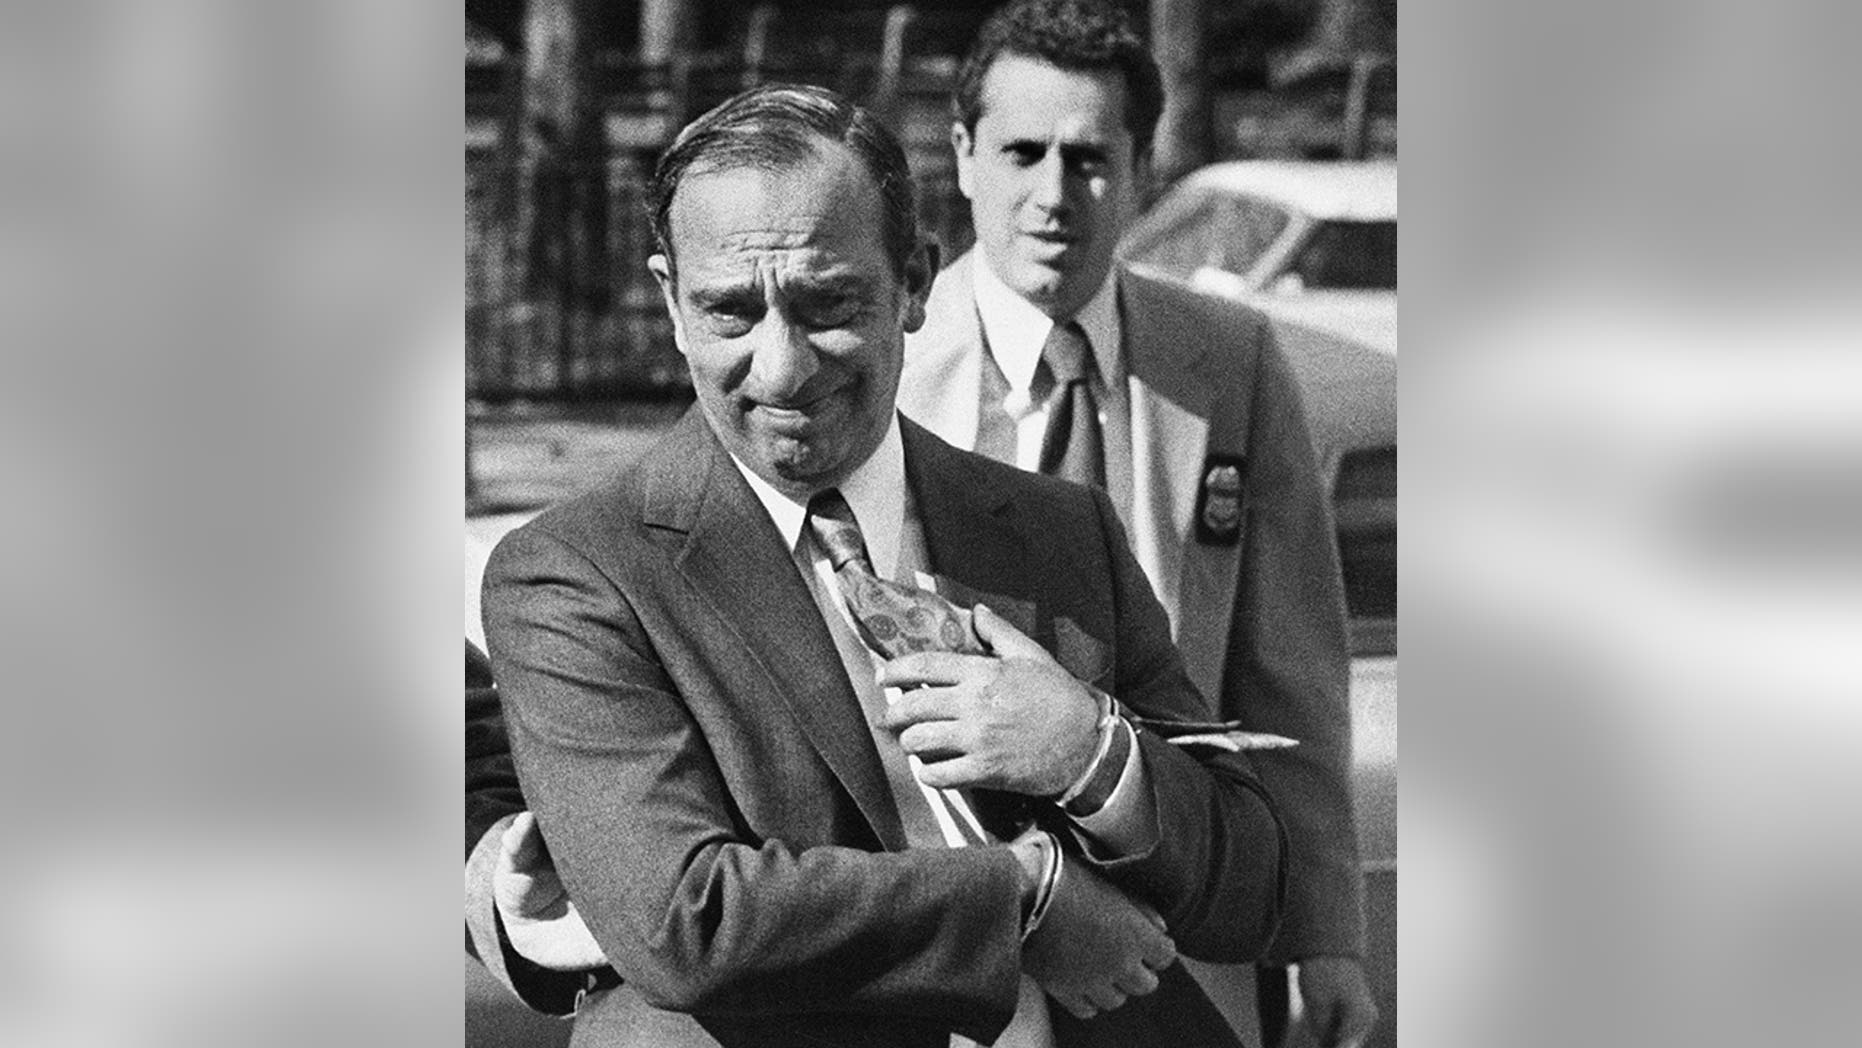 Photo shows Colombo crime family boss Carmine Persico as he was led into court in handcuffs in New York in 1980. (New York Post via AP)